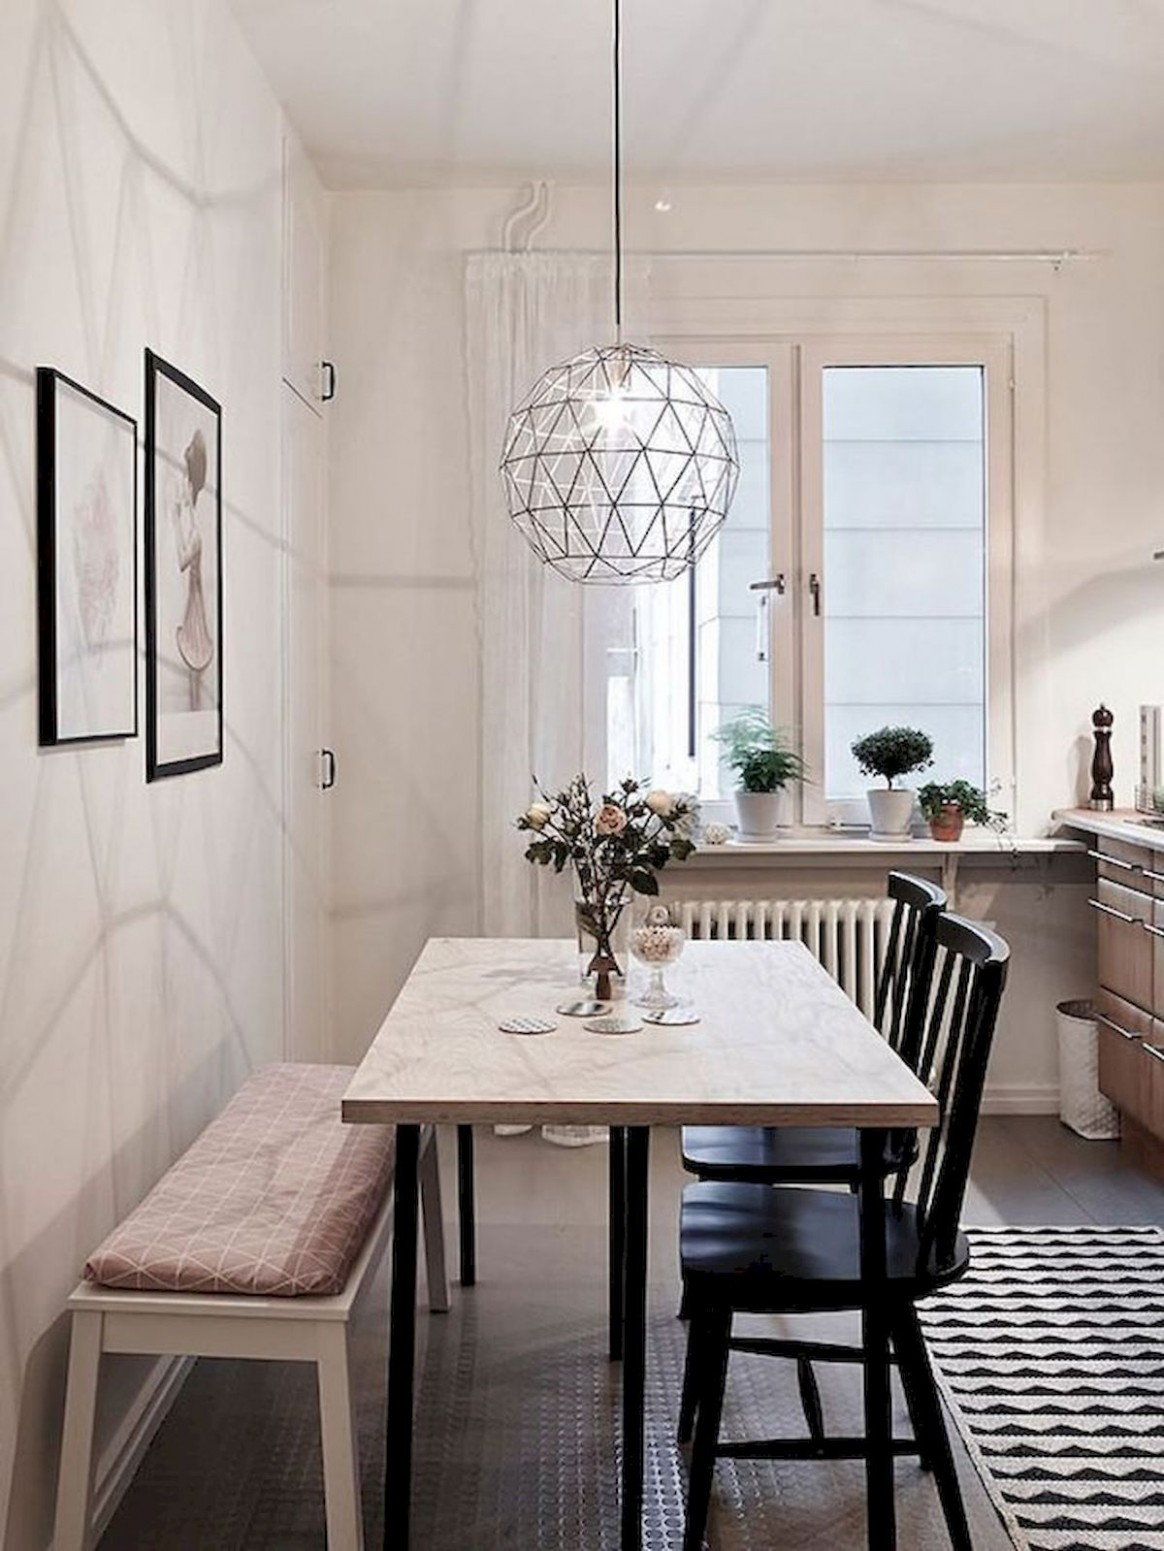 Cool 9 Beautiful Small Dining Room Ideas On A Budget - If you are  - Dining Room Area Ideas